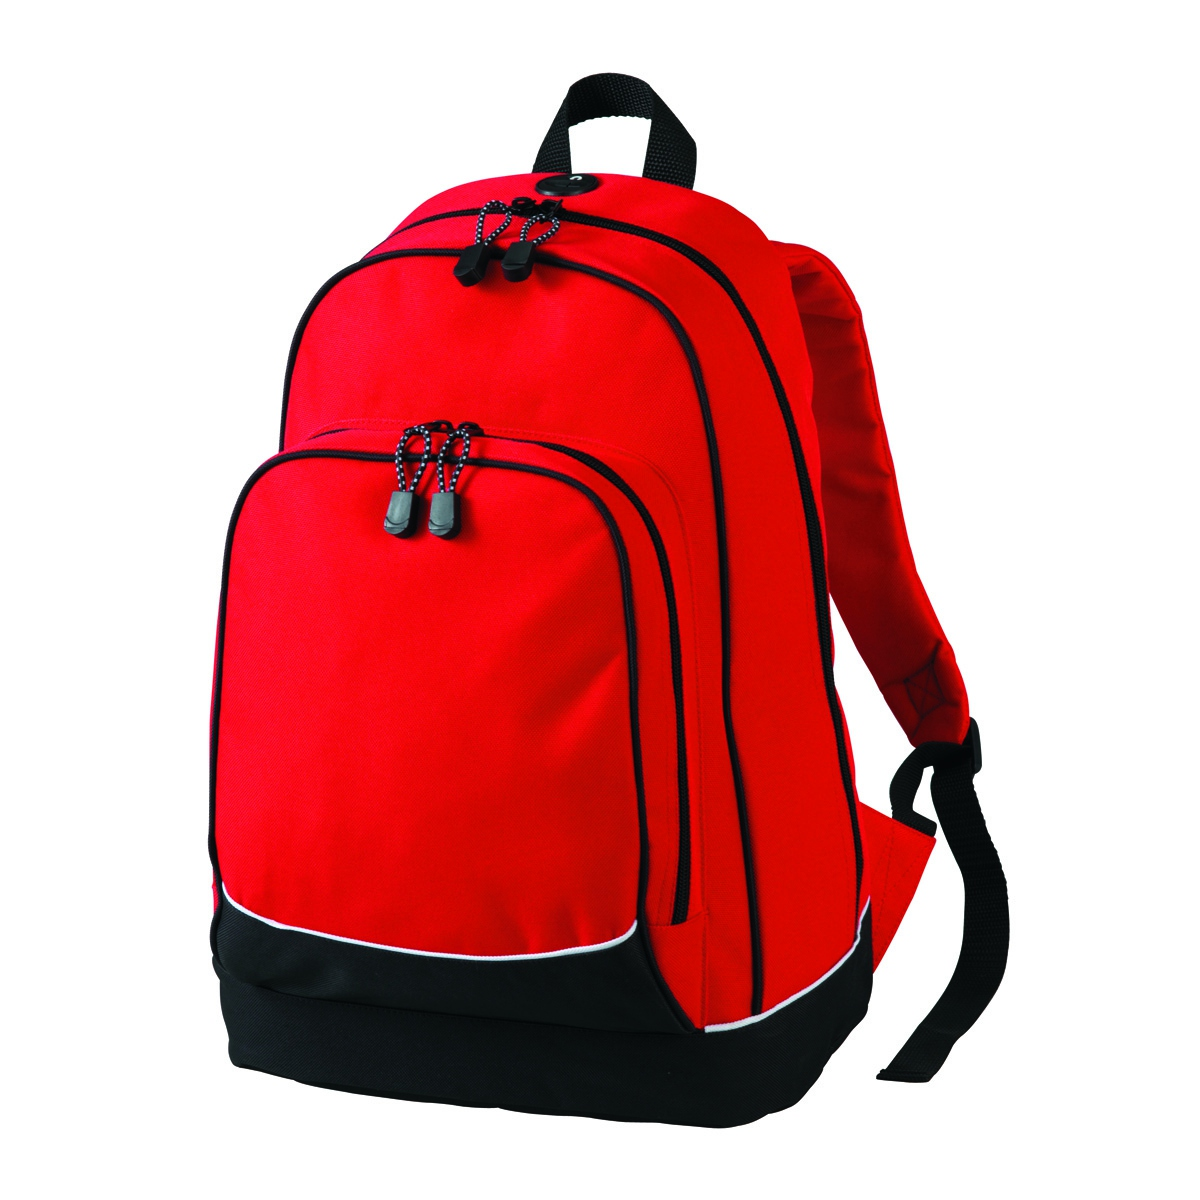 Sac à dos loisirs - CITY BACKPACK - 1803310 - rouge